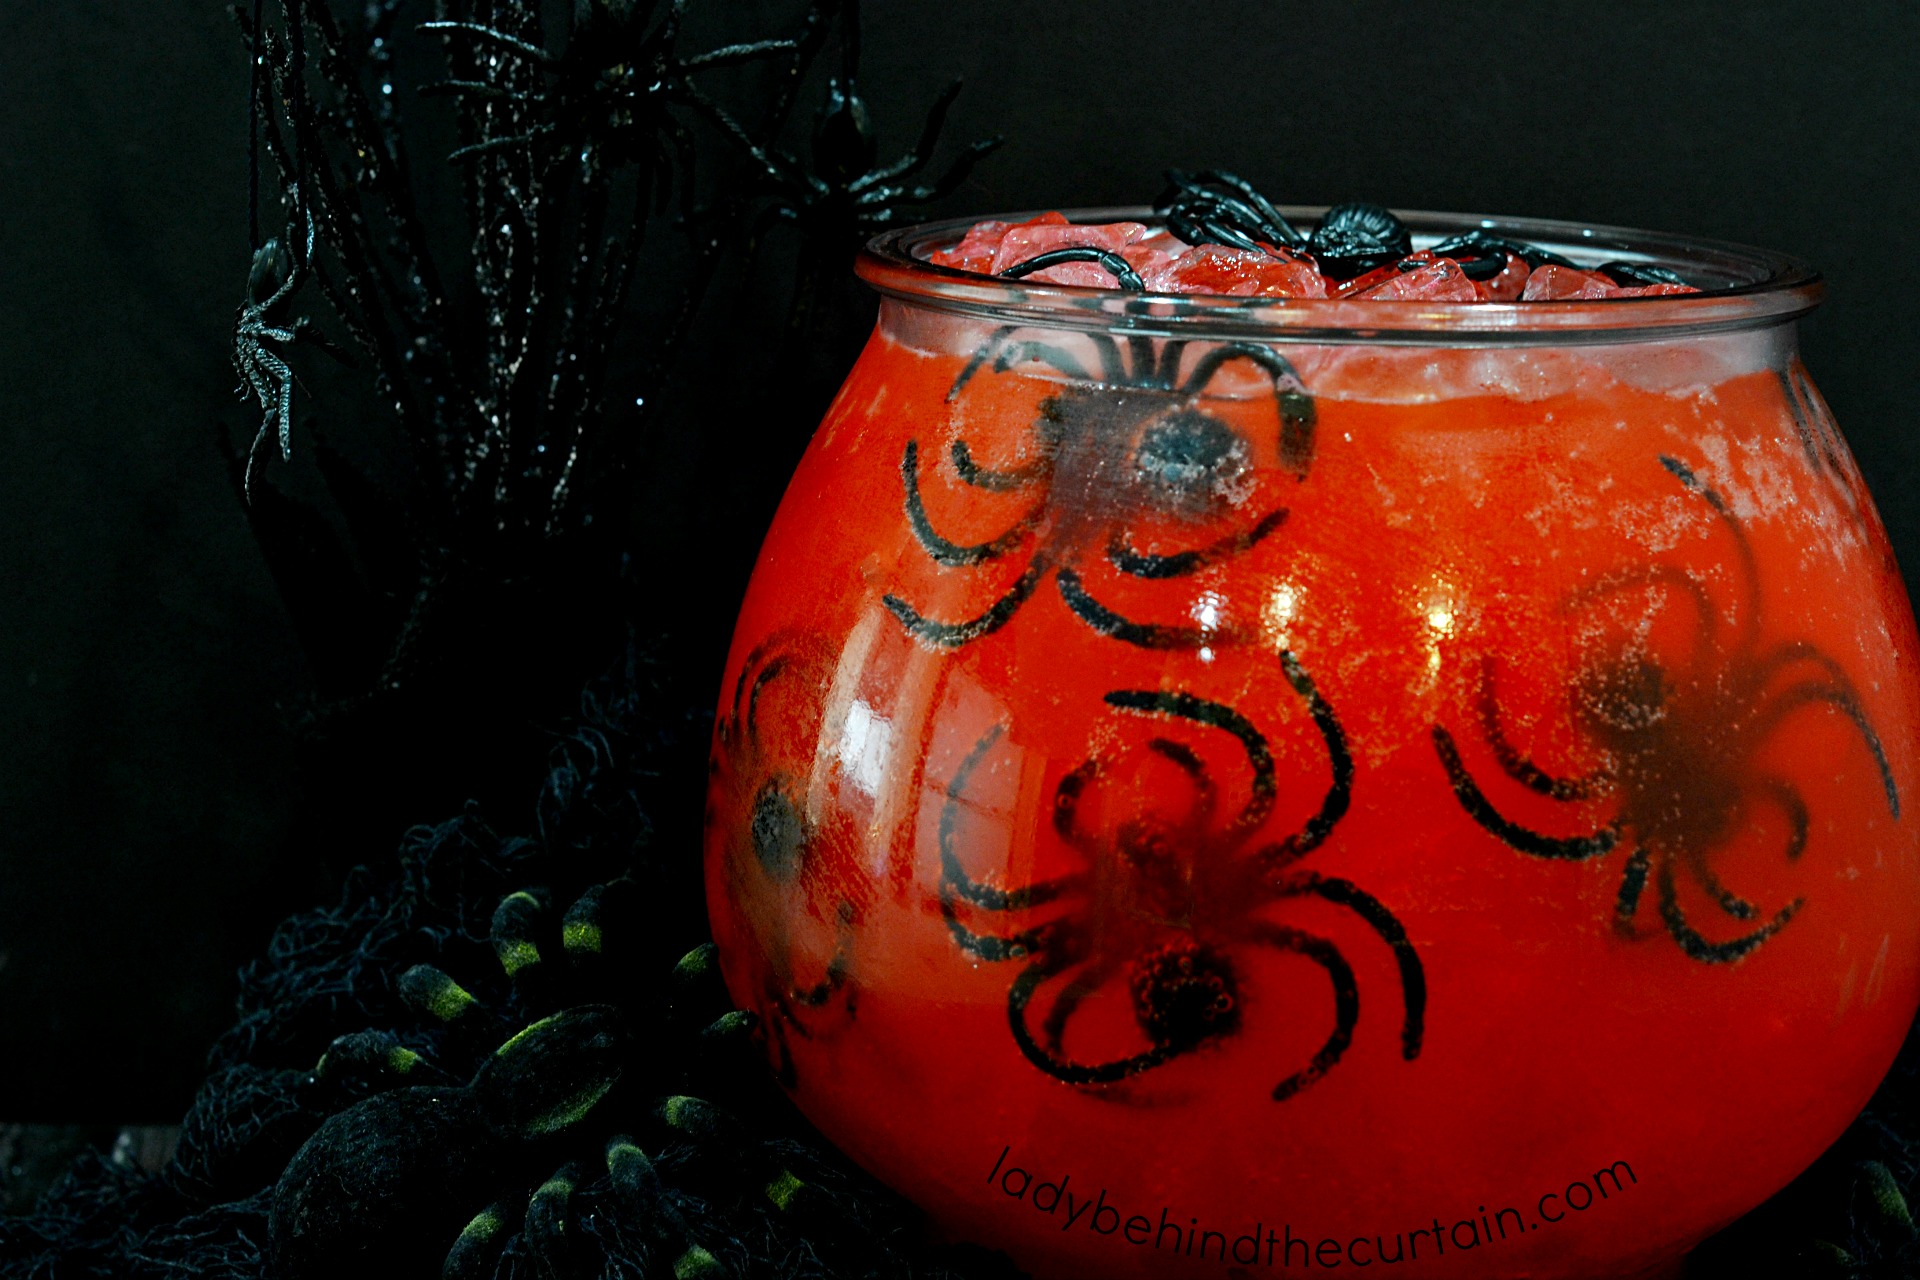 Black Widow Venom Halloween Punch